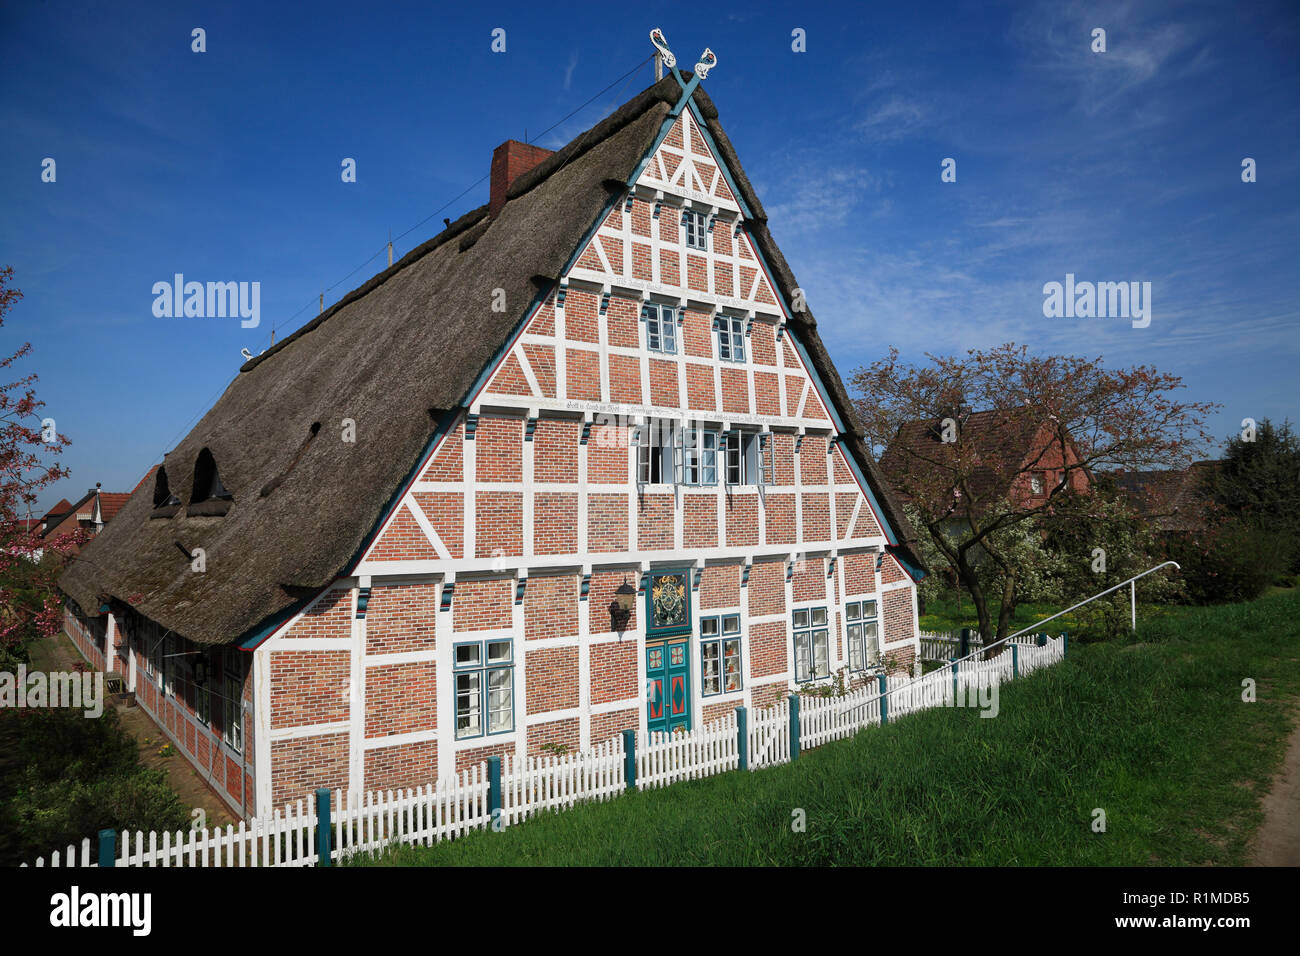 Old Farmhouse at Este-dike, Jork-Koenigreich, Altes Land, Lower Saxony, Germany, Europe Stock Photo